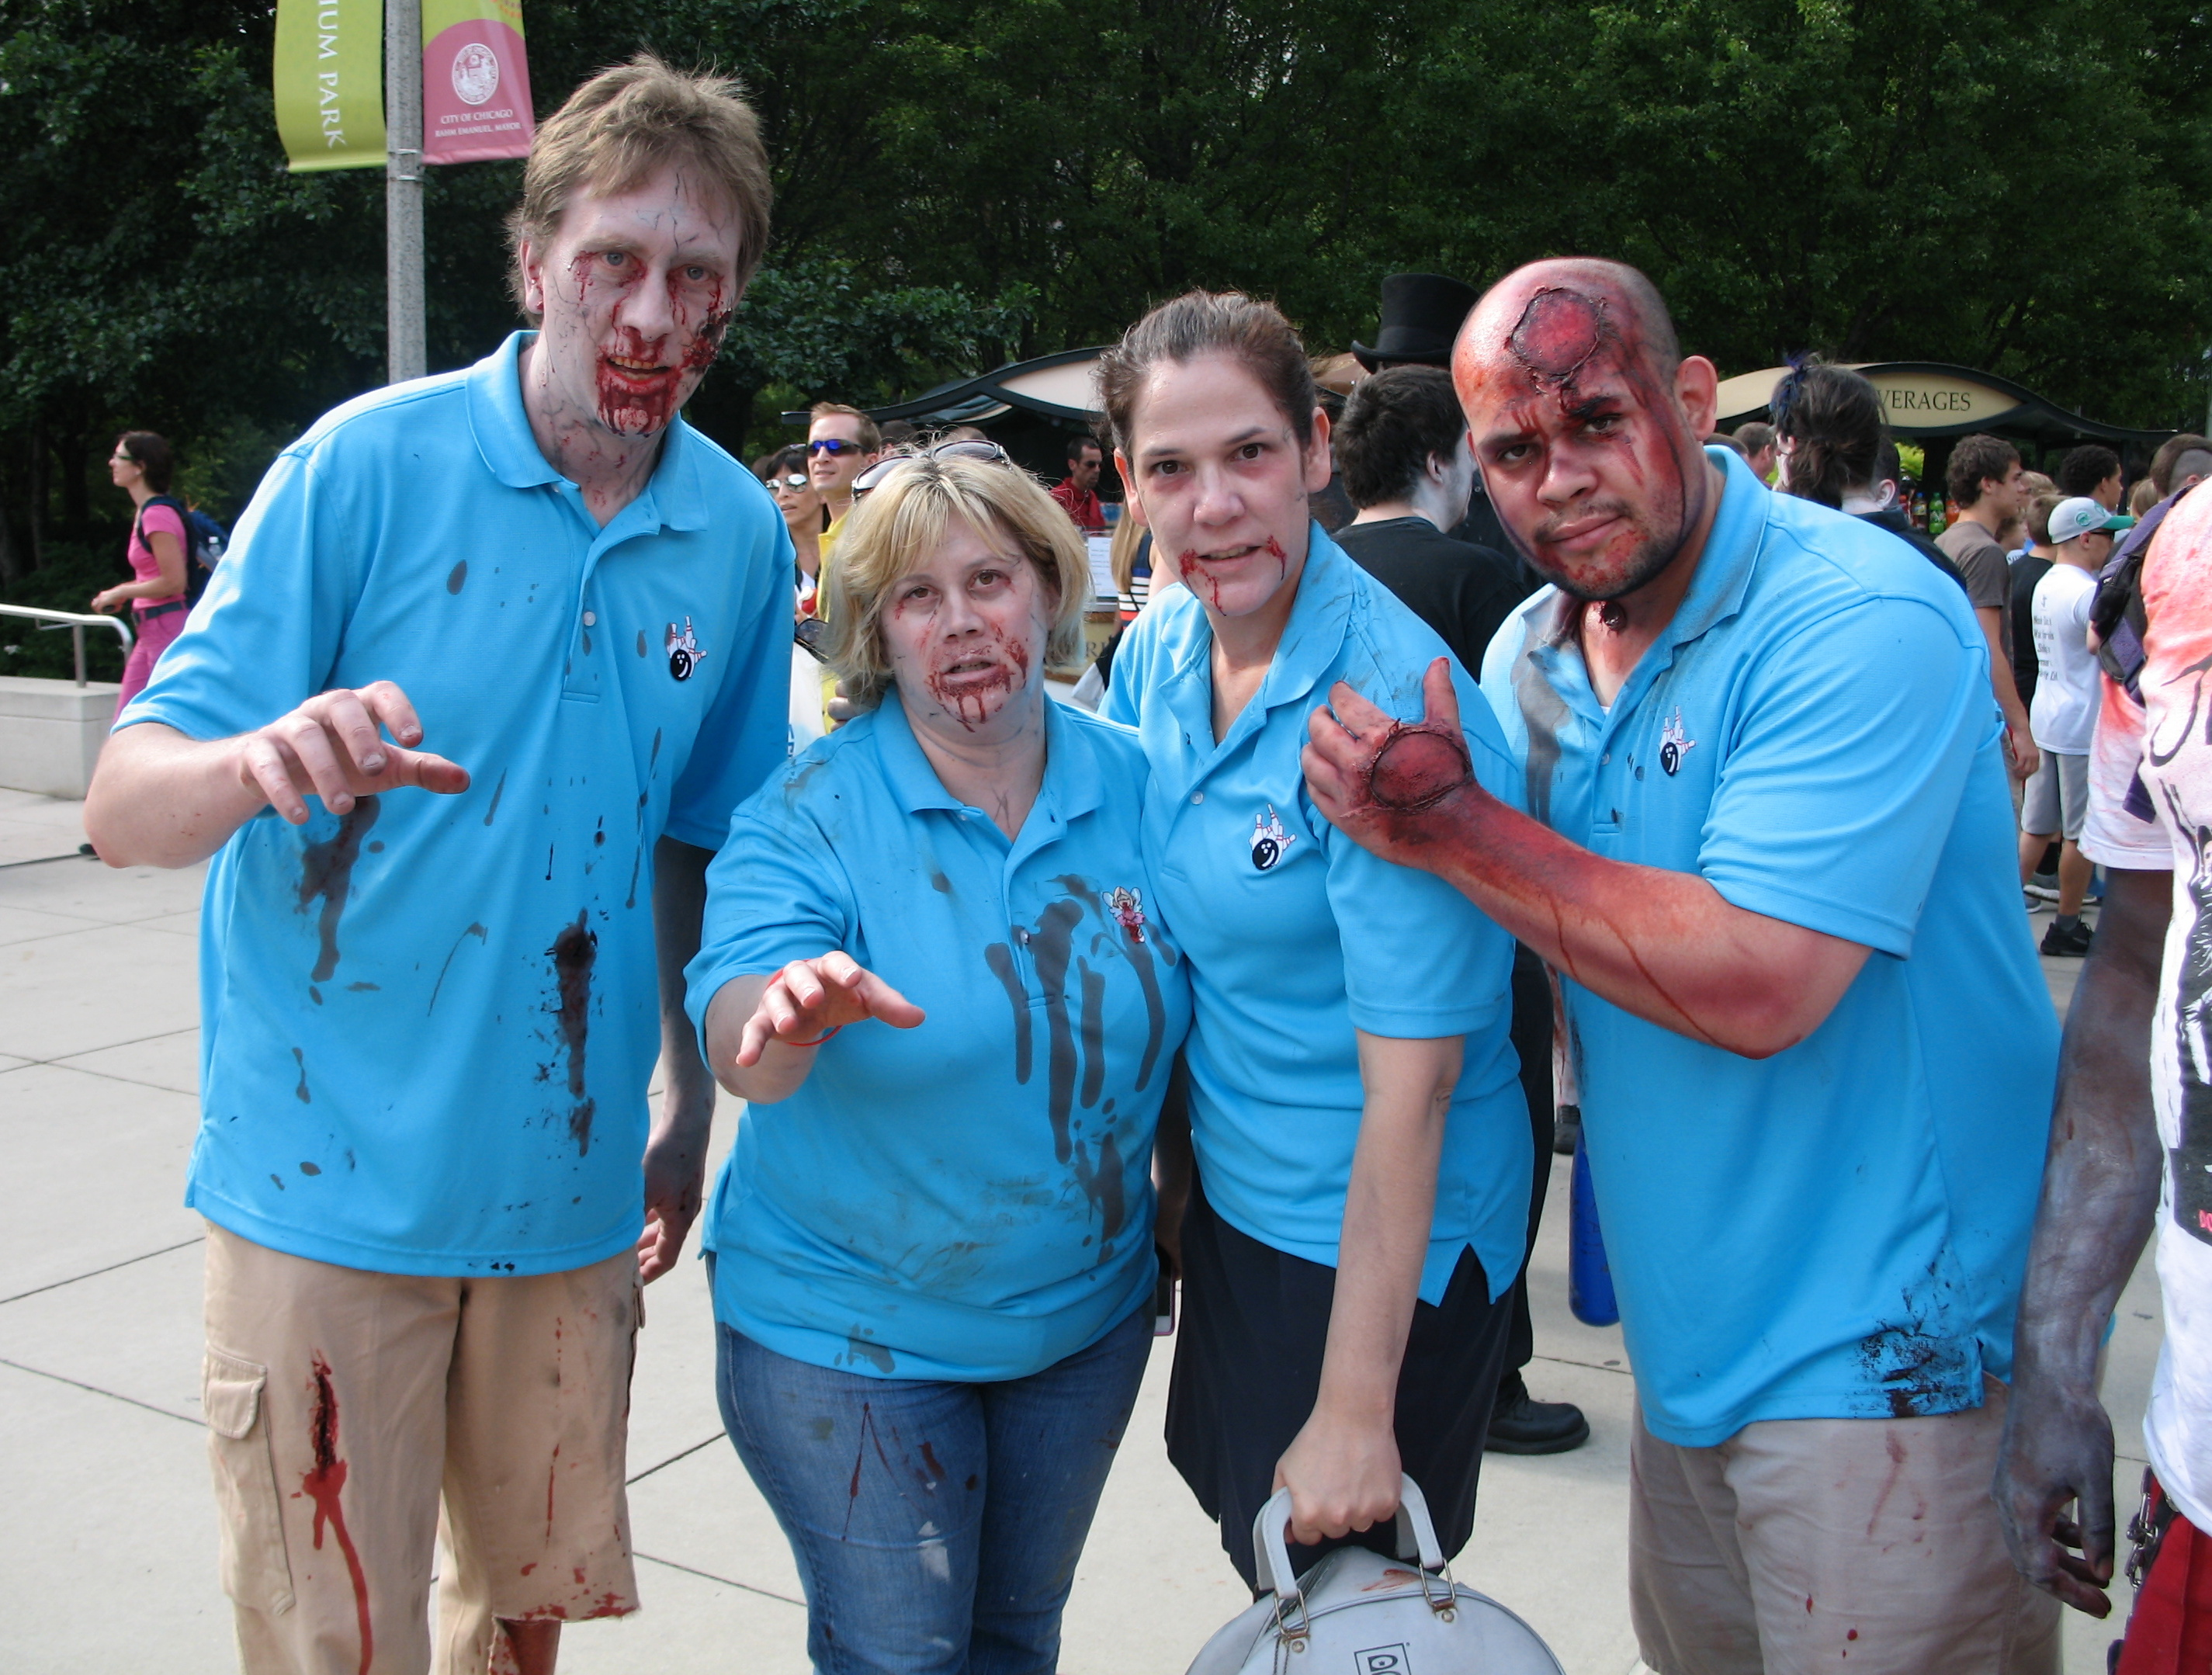 Color photo taken outdoors of four zombies, two men and two women, wearing matching blue shirts. One of the women is holding a bowling ball bag.